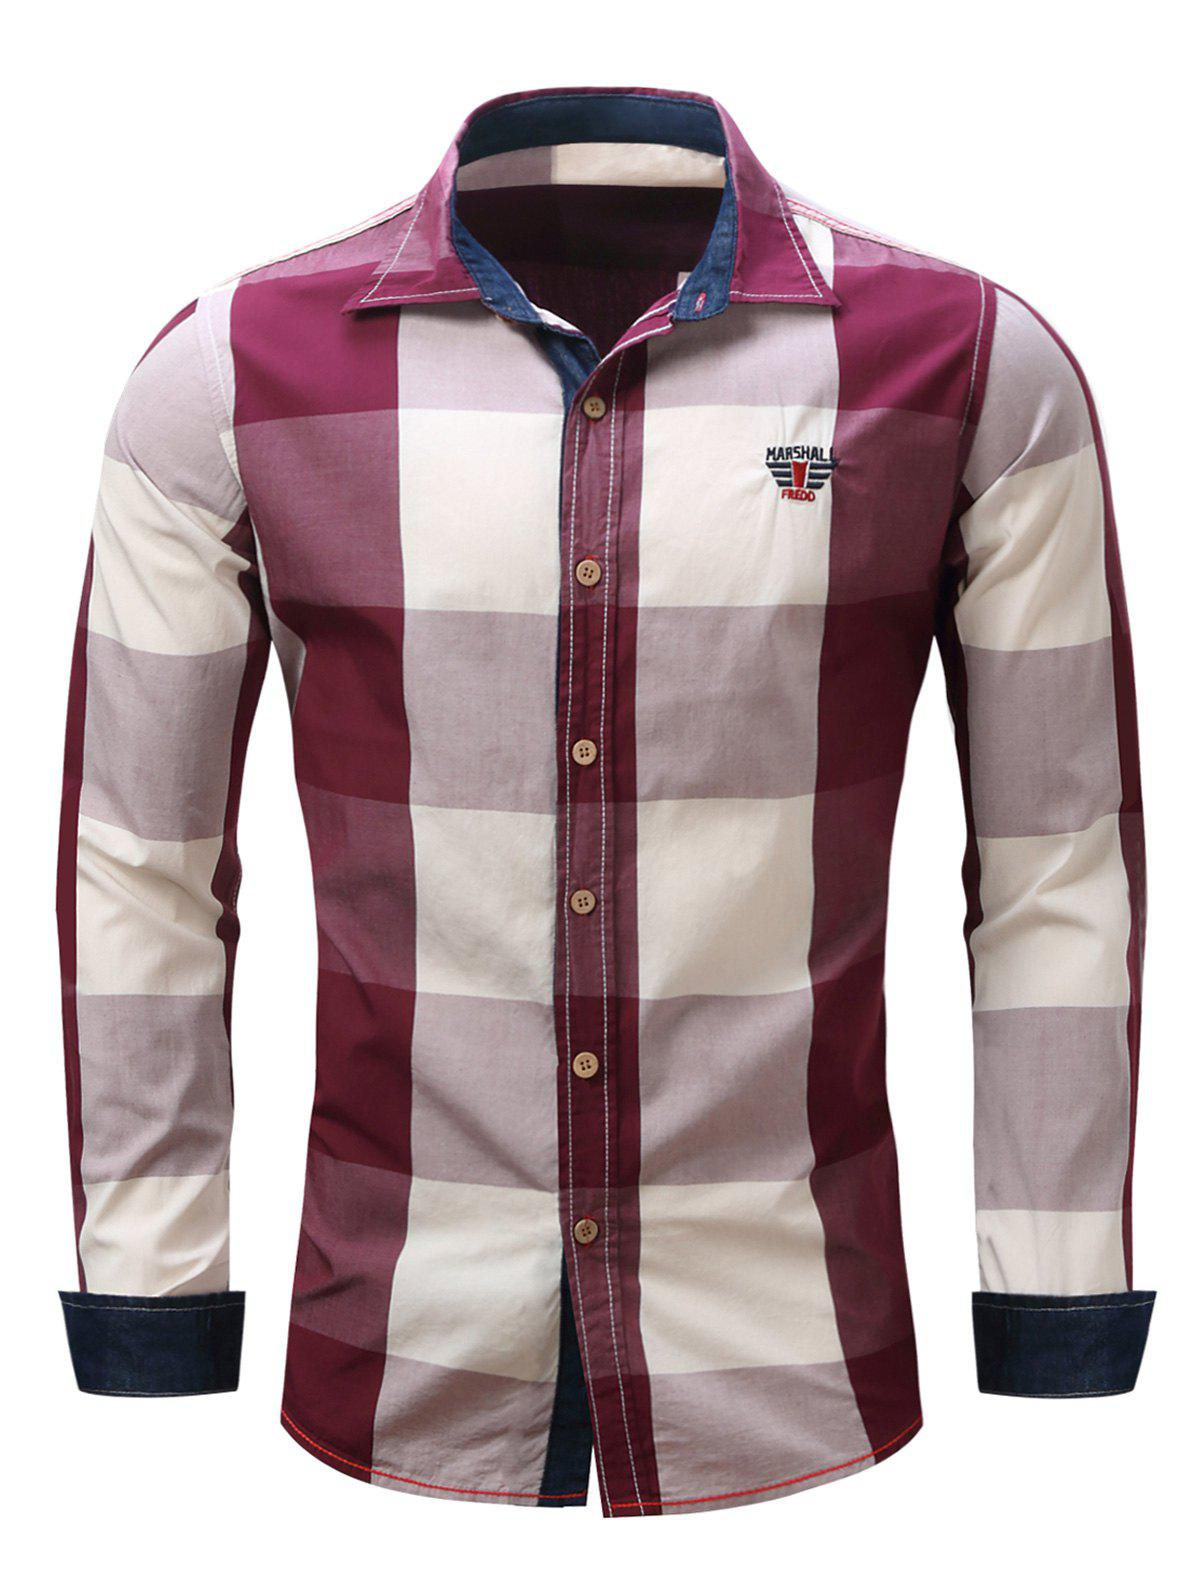 Turn-Down Collar Plaid Pattern Long Sleeve Shirt For MenMEN<br><br>Size: XL; Color: RED; Shirts Type: Casual Shirts; Material: Cotton,Polyester; Sleeve Length: Full; Collar: Turn-down Collar; Weight: 0.295kg; Package Contents: 1 x Shirt;